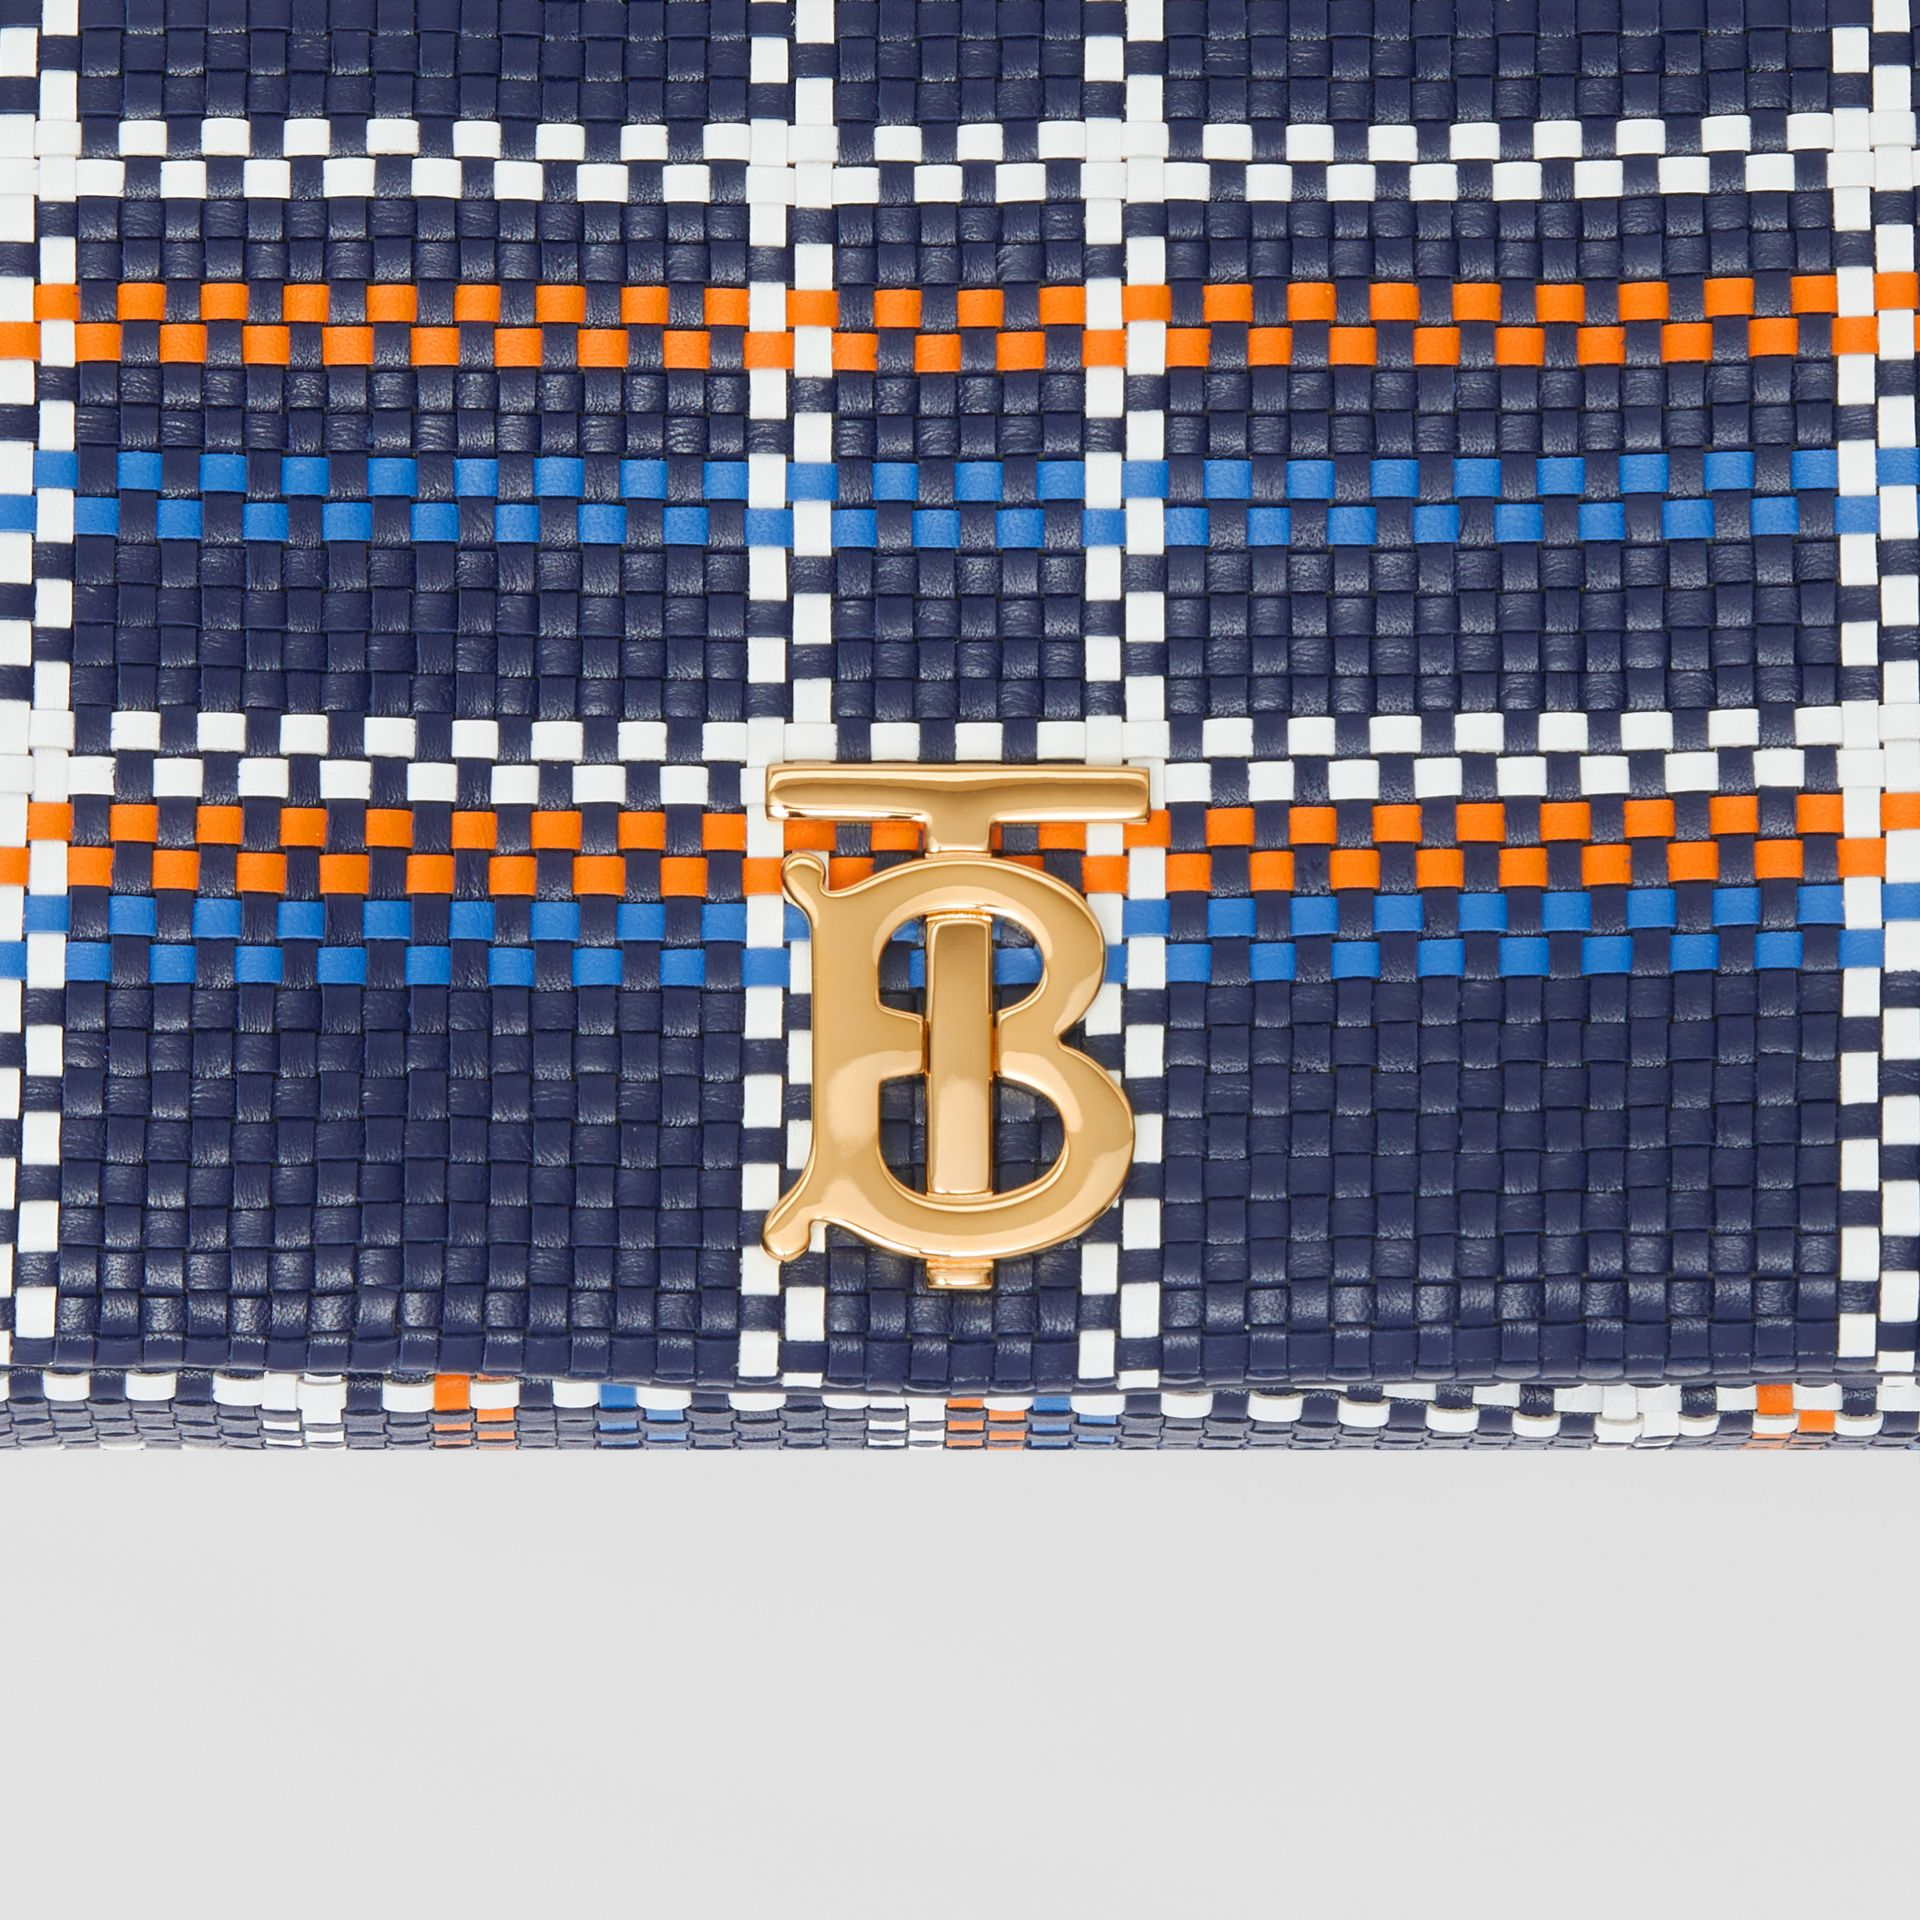 Small Latticed Leather Lola Bag in Blue/white/orange - Women | Burberry Canada - gallery image 5